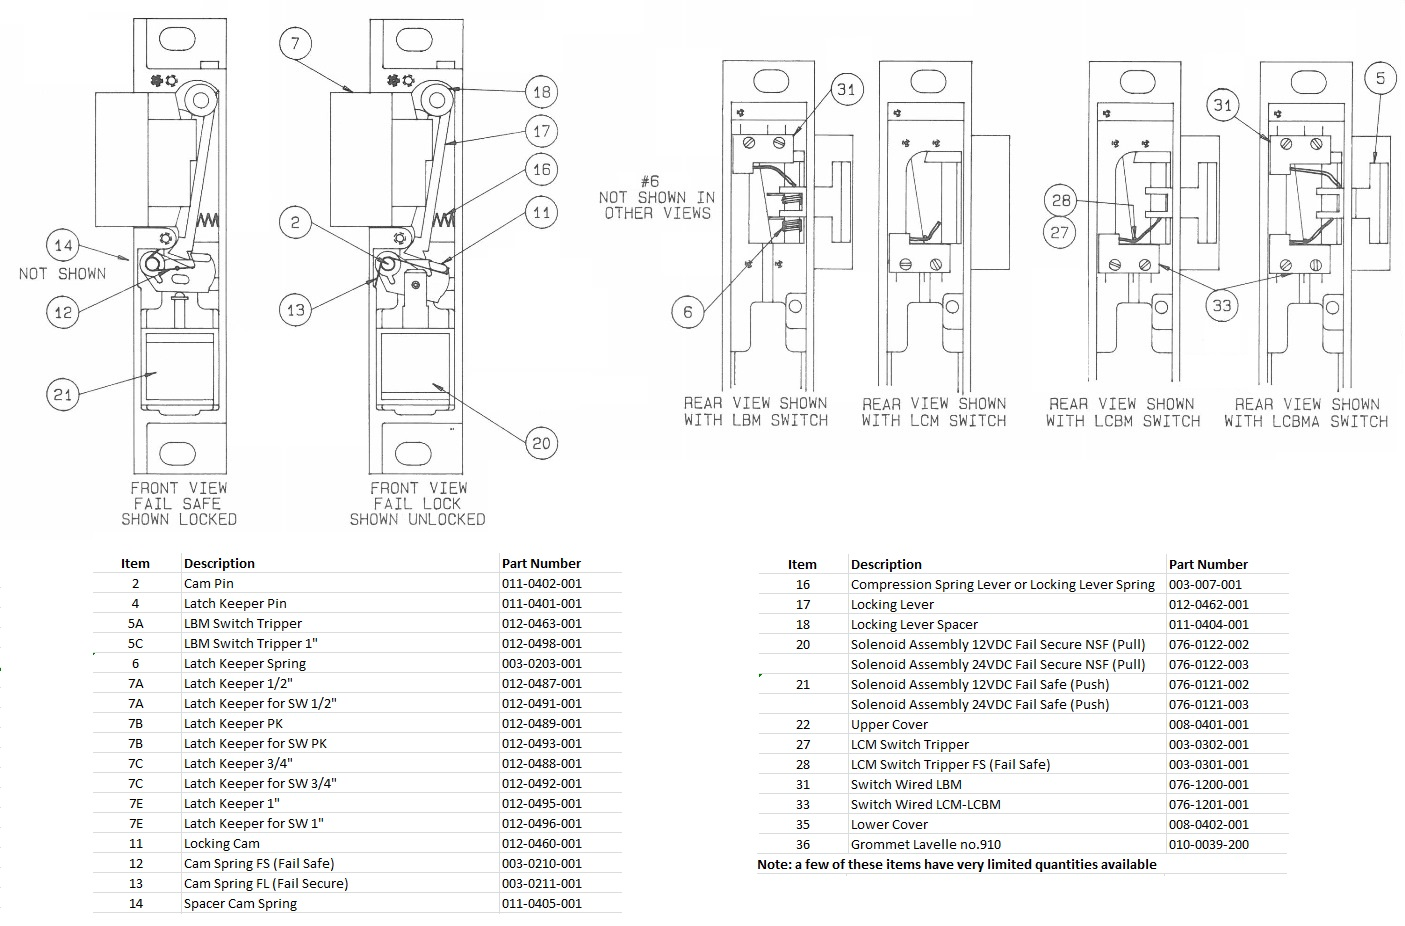 Folger Adam 300 Parts Diagram available hes folger adams 300 series solenoid 076 0122 003 24vdc fail secure adams rite electric strike wiring diagram at panicattacktreatment.co